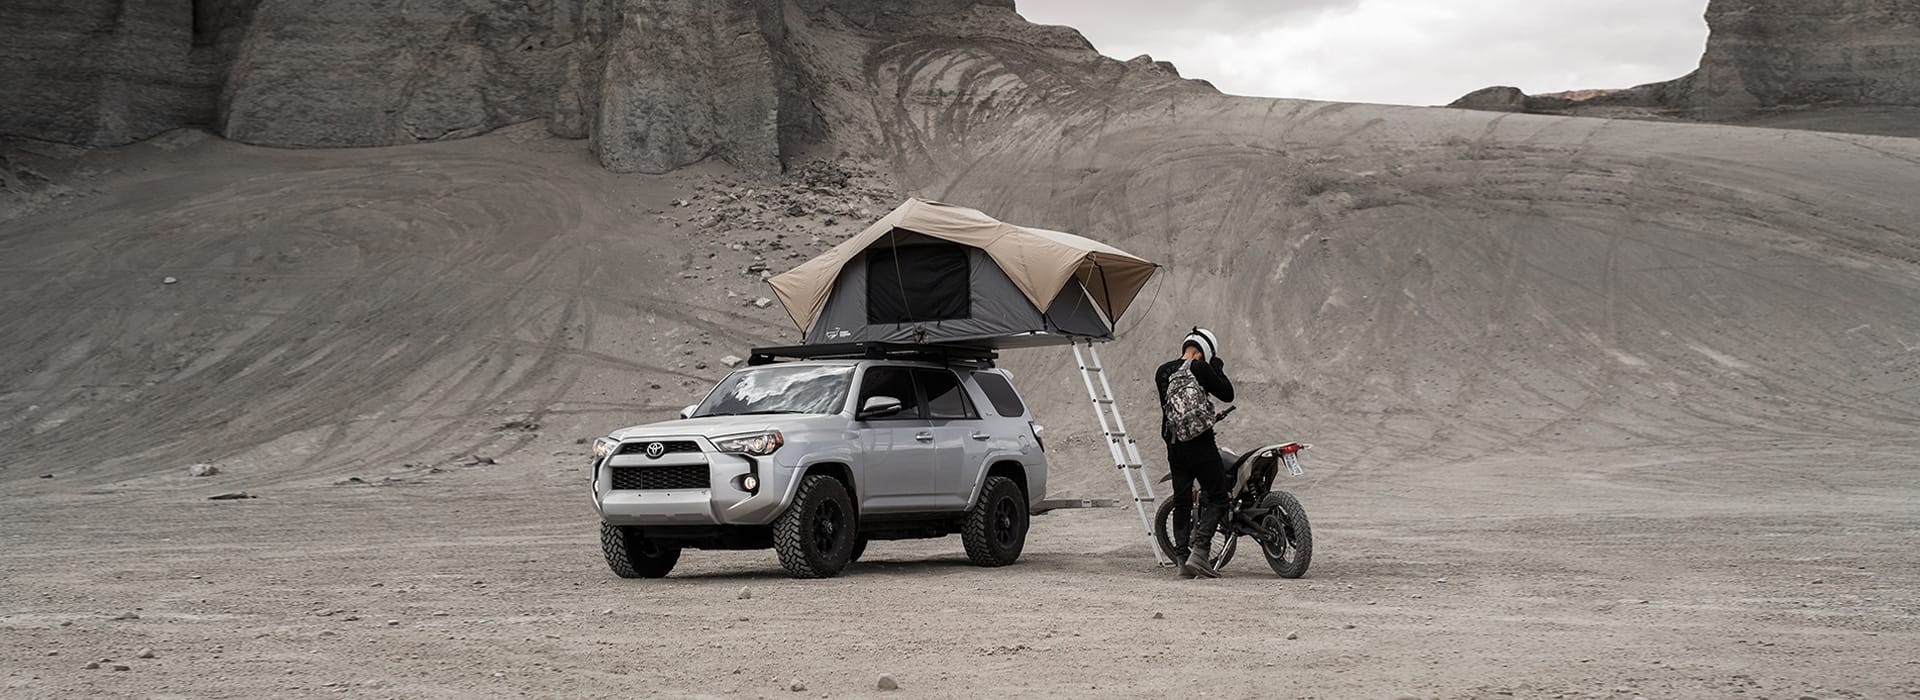 FRONT RUNNER | Off-Road Tough Roof Racks & Vehicle Adventure